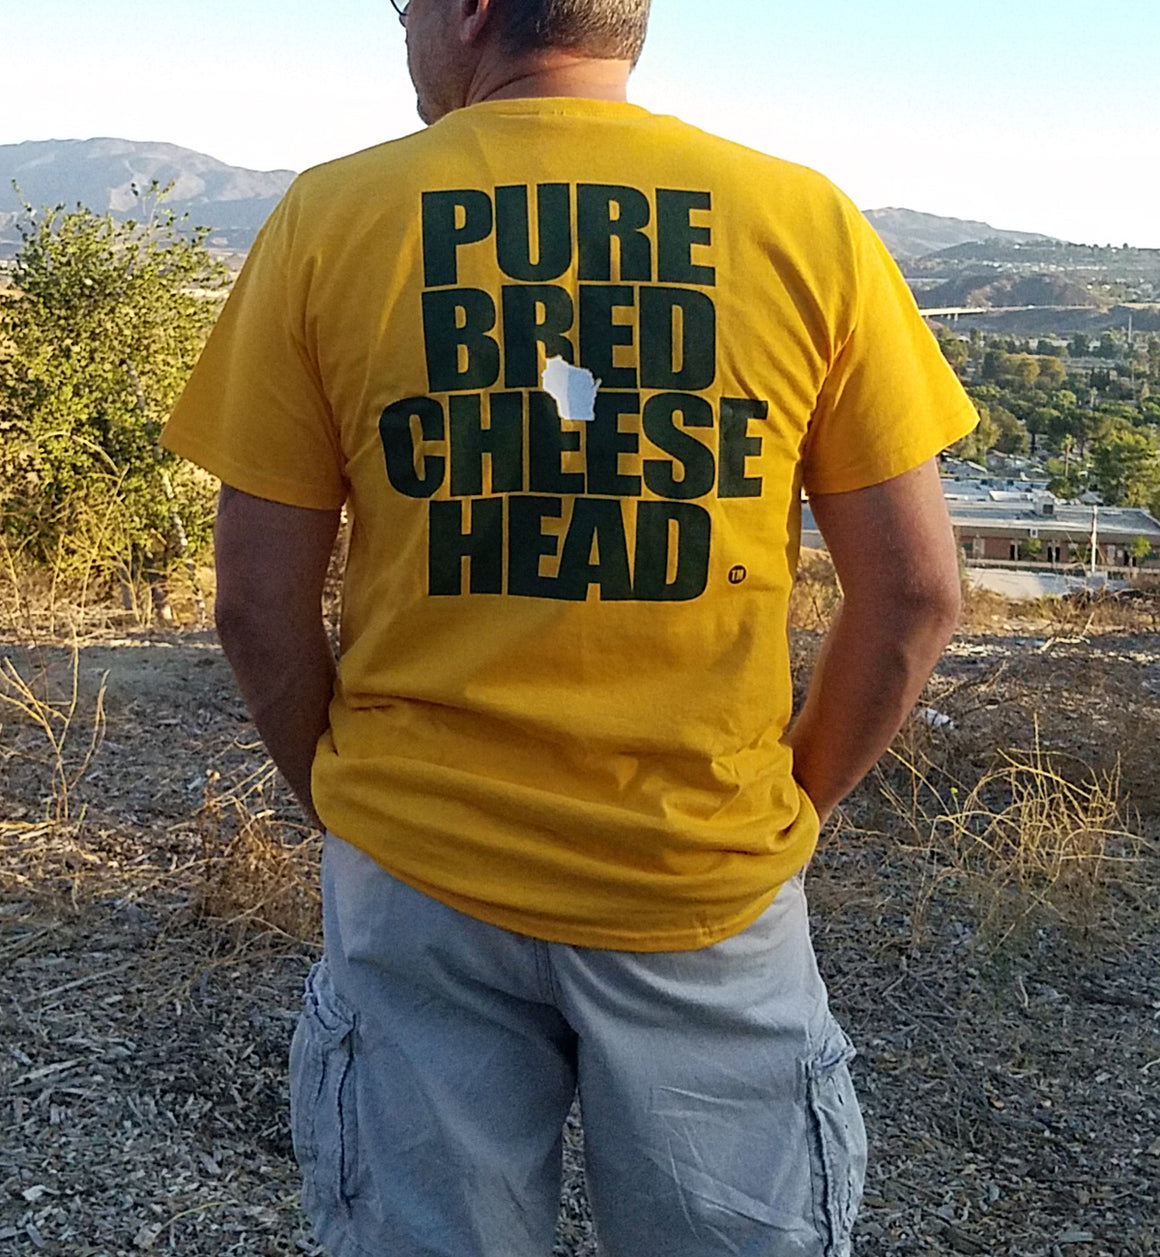 GOLD CHEESEHEAD T-SHIRT